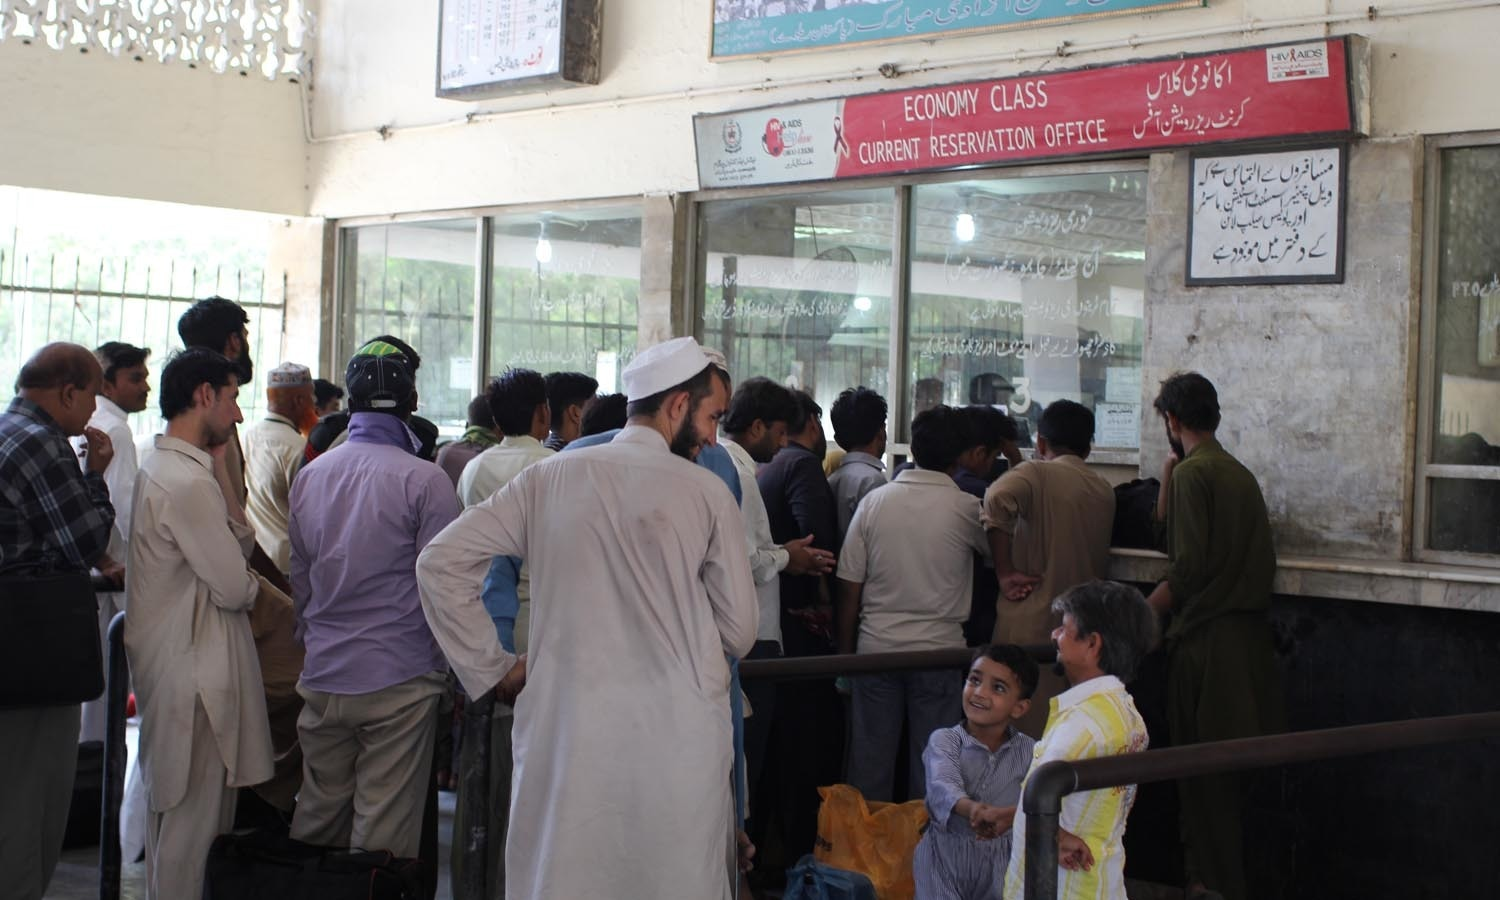 Long queues for ticket reservation is a common sight at the station.